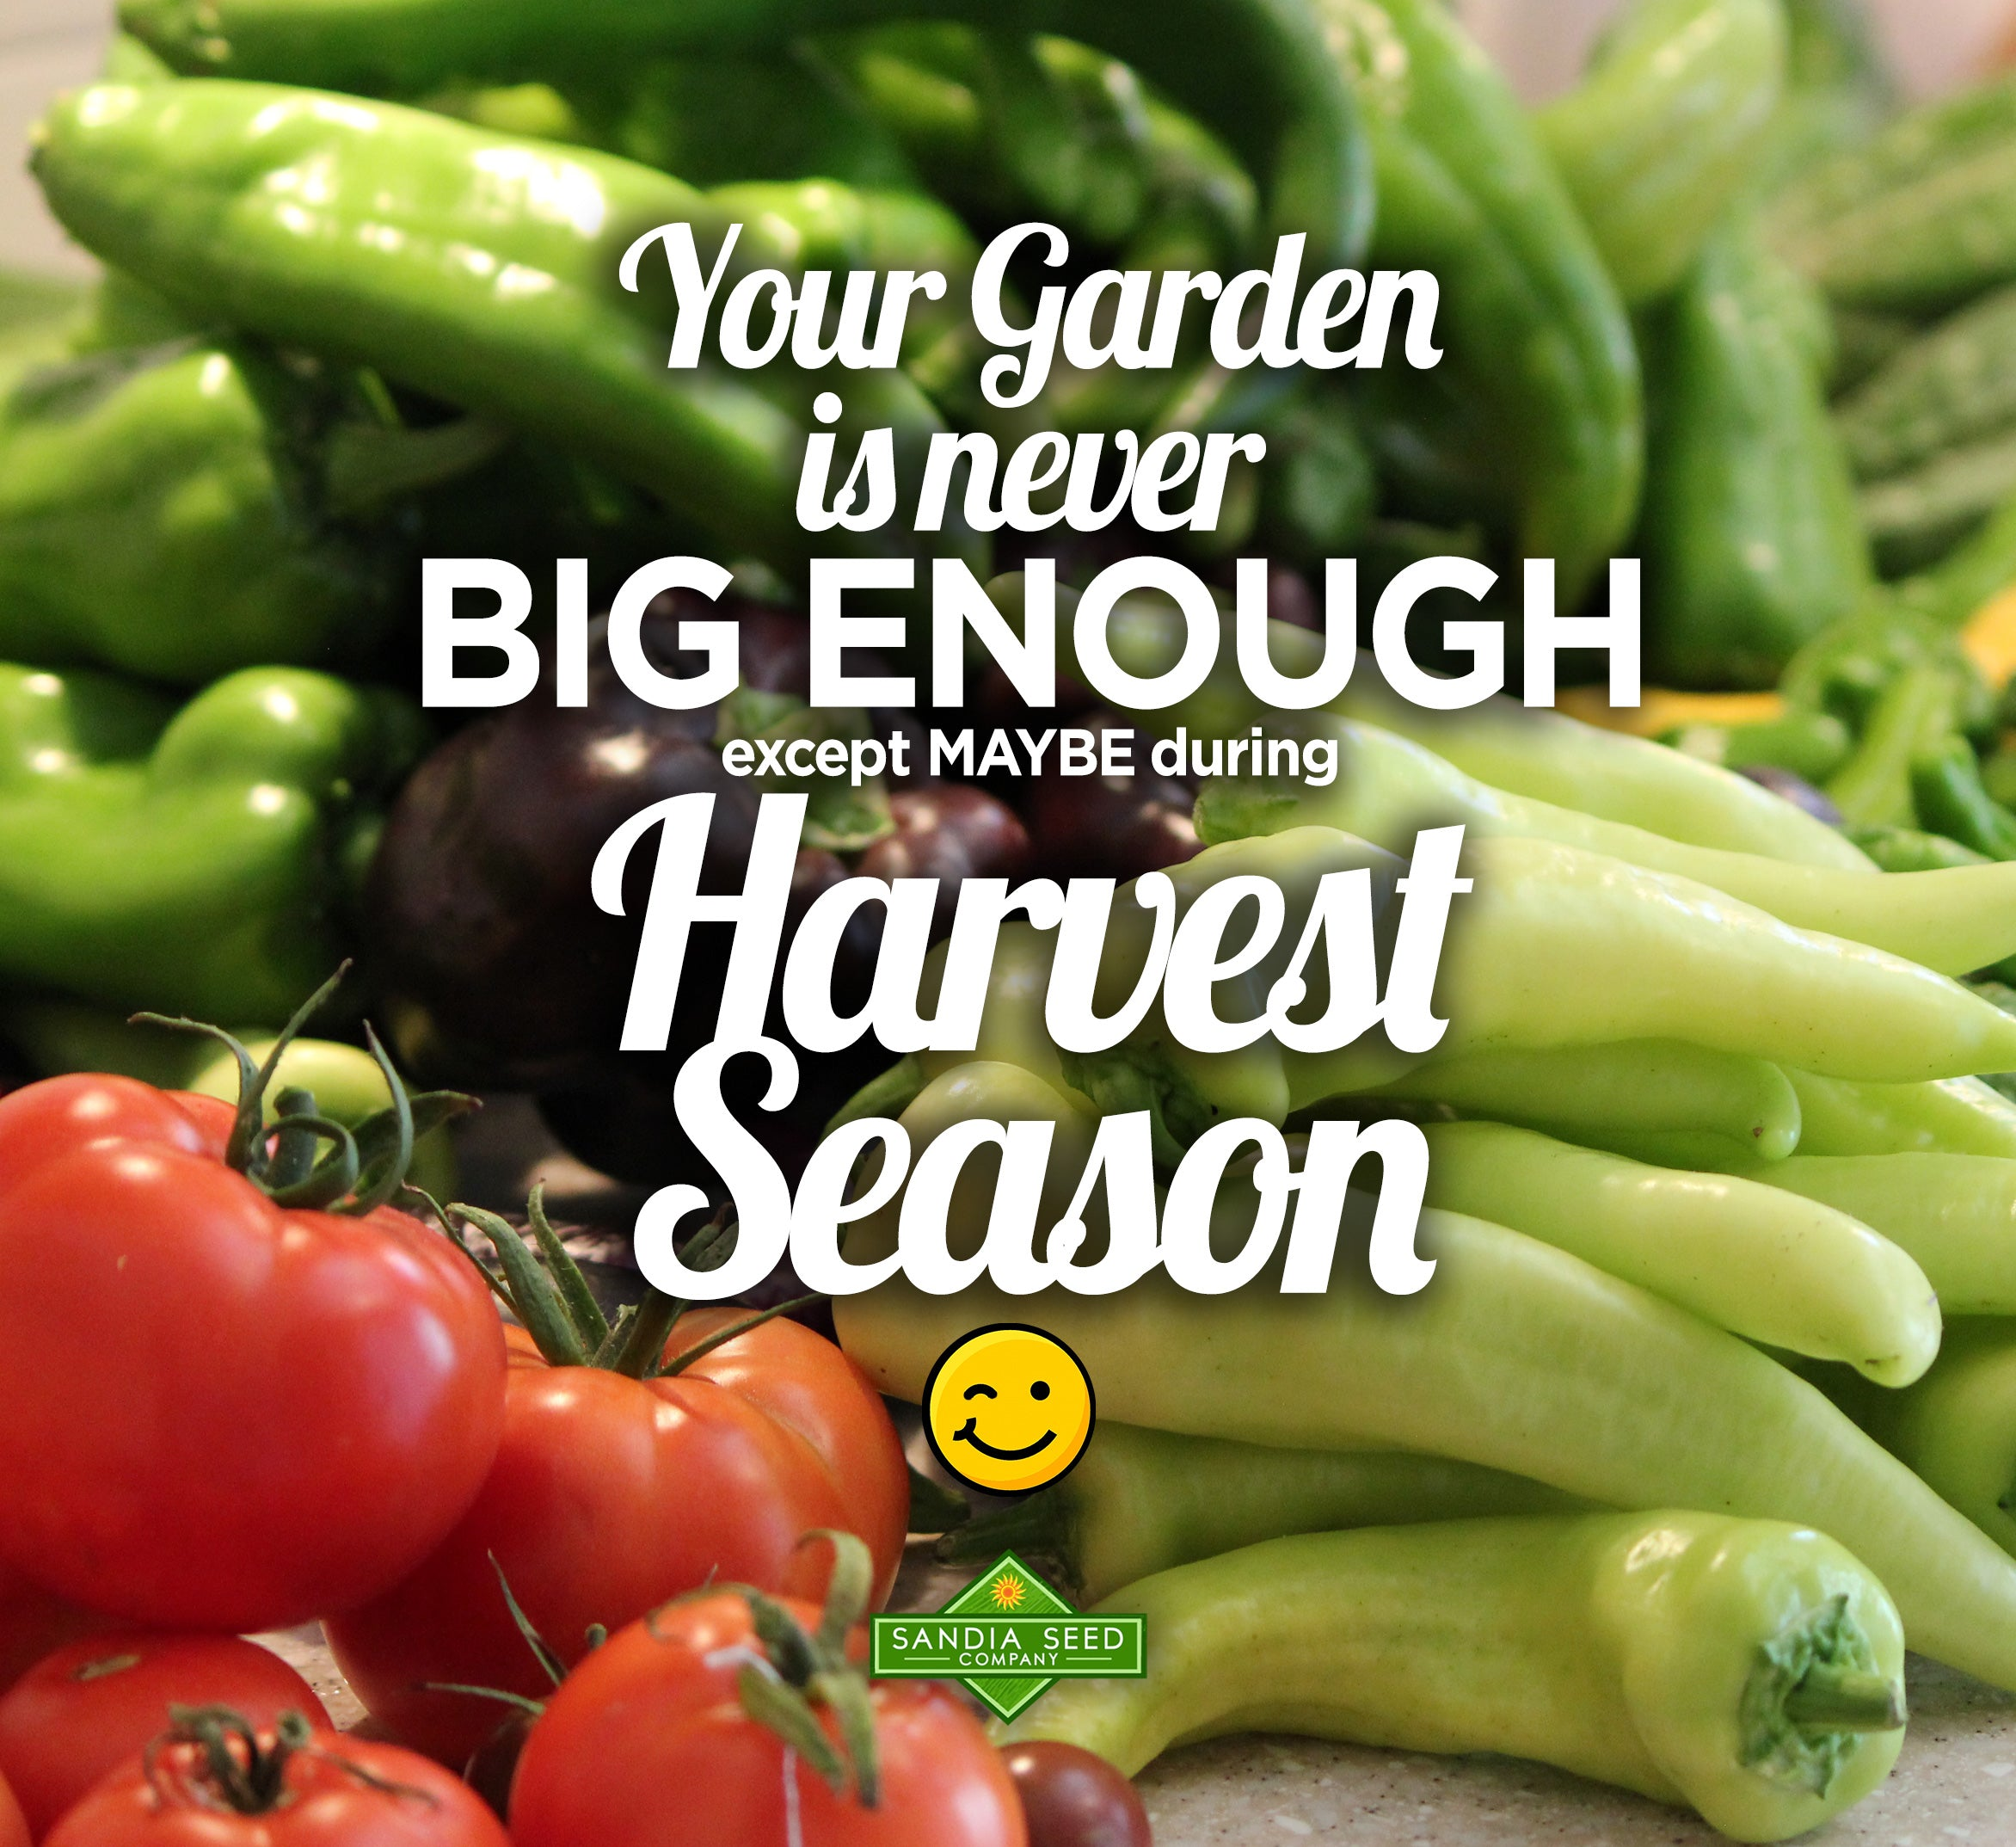 Garden Memes: Your Garden is never  big enough except MAYBE during Harvest Season